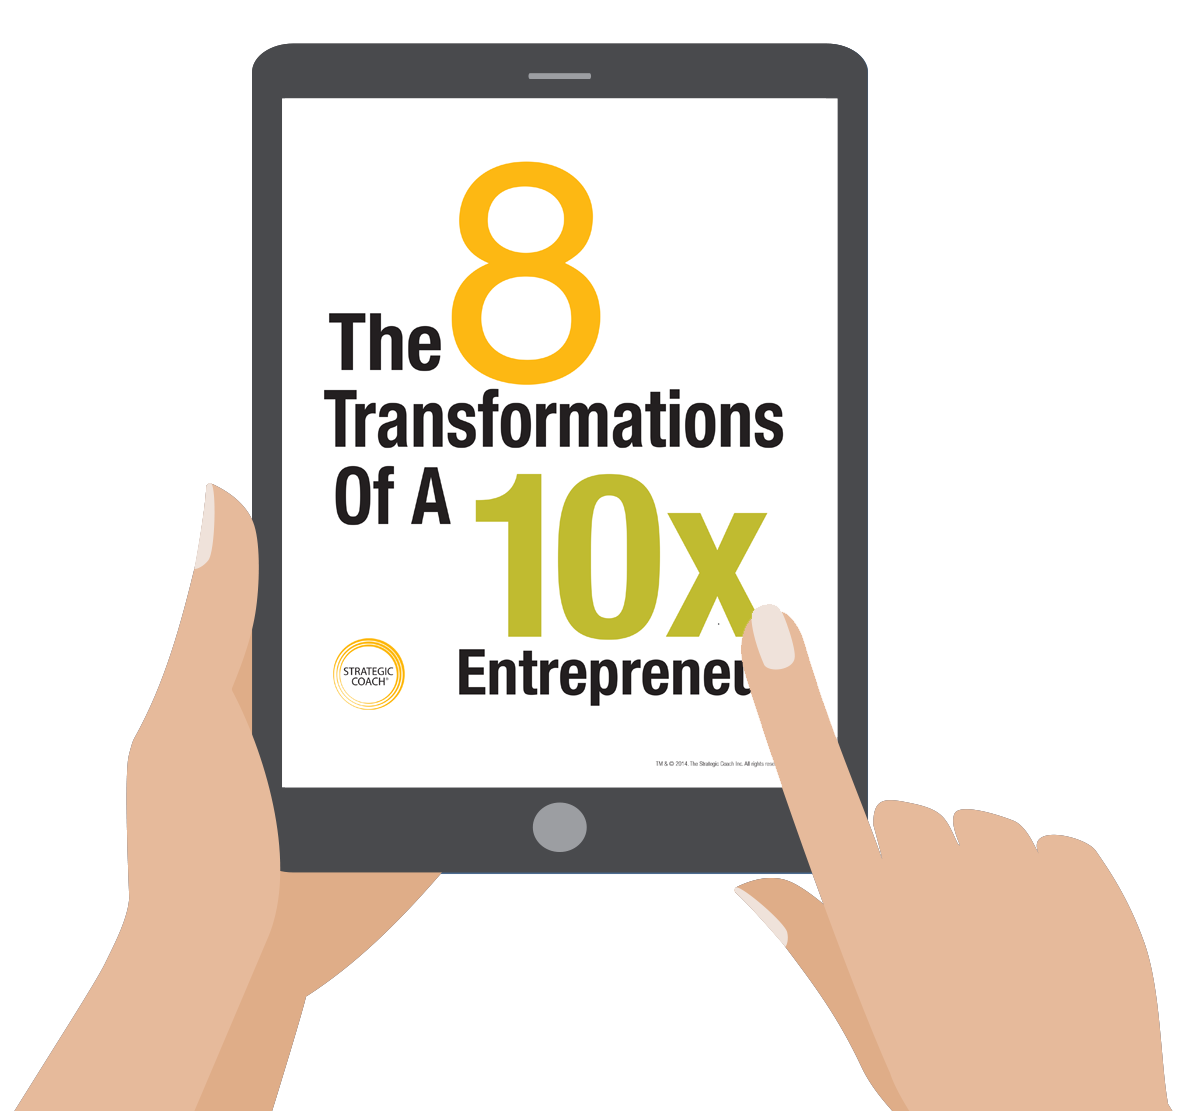 Download The 8 Transformations Of A 10x Entrepreneur.